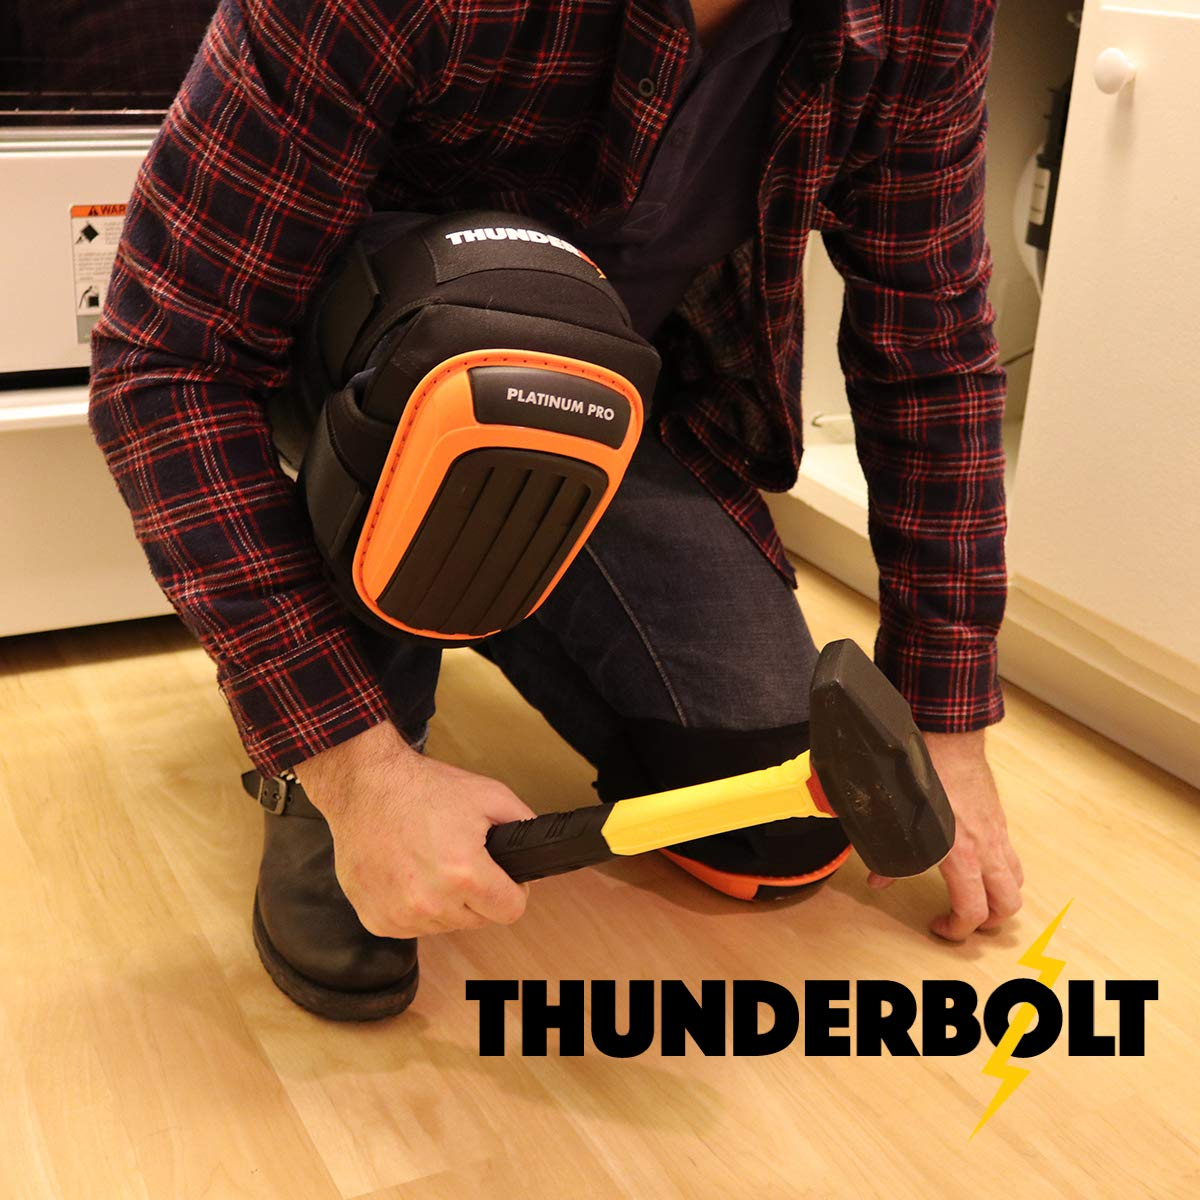 Knee Pads for Work by Thunderbolt with Heavy Duty Foam Cushioning and Gel Cushion Perfect for Construction, Flooring and Gardening with Adjustable Anti-Slip Straps by Thunderbolt (Image #7)